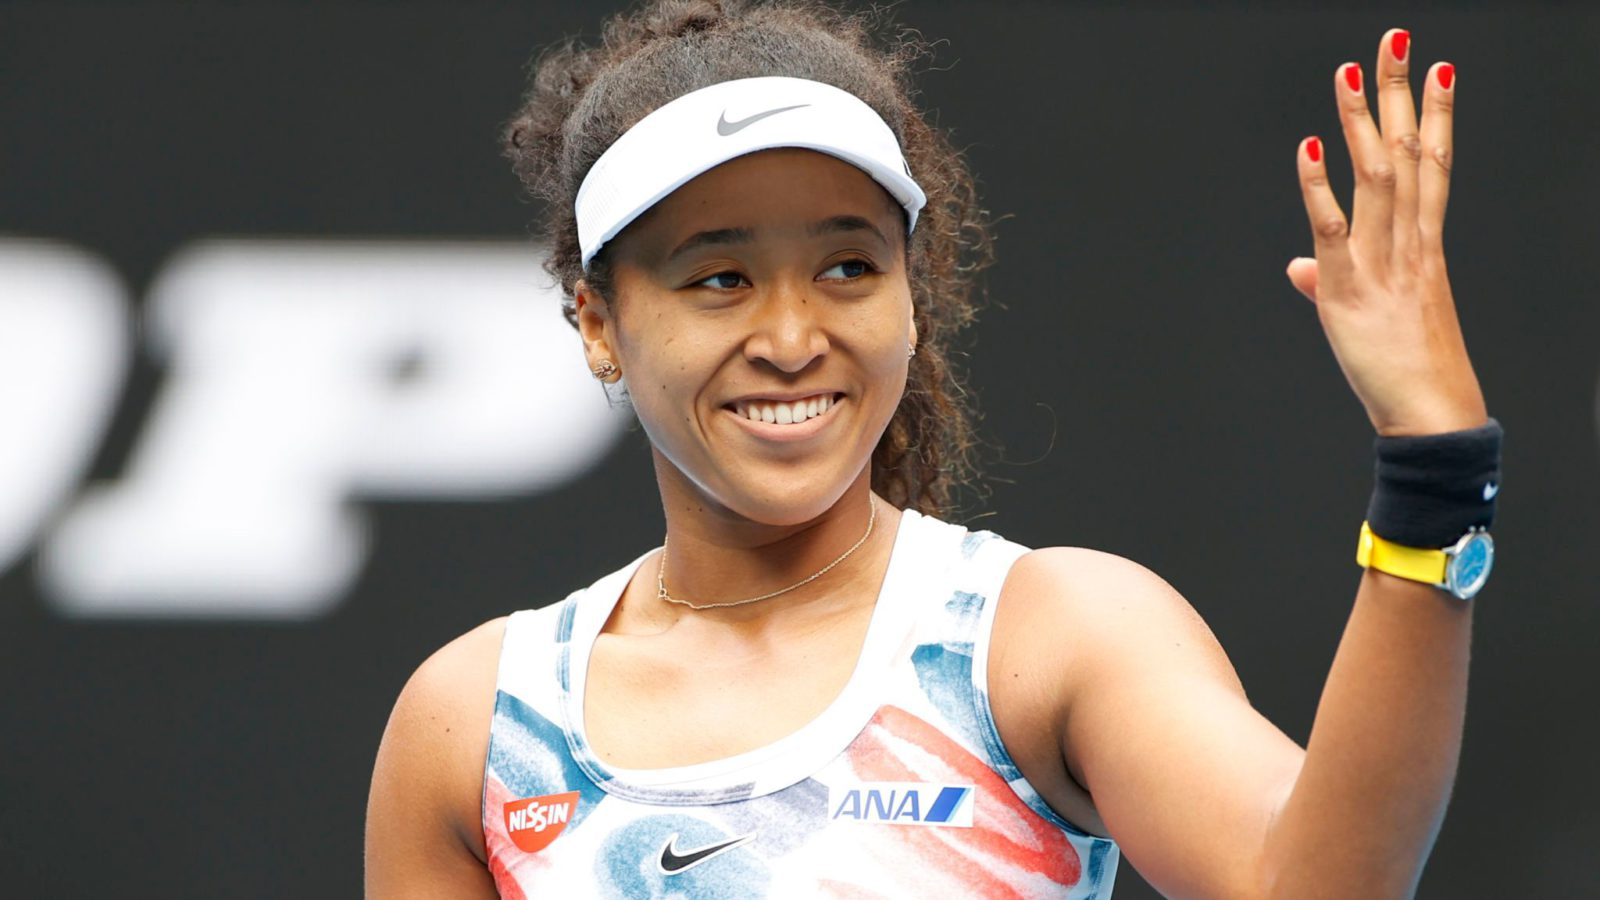 Naomi Osaka becomes the highest-paid female athlete in the world